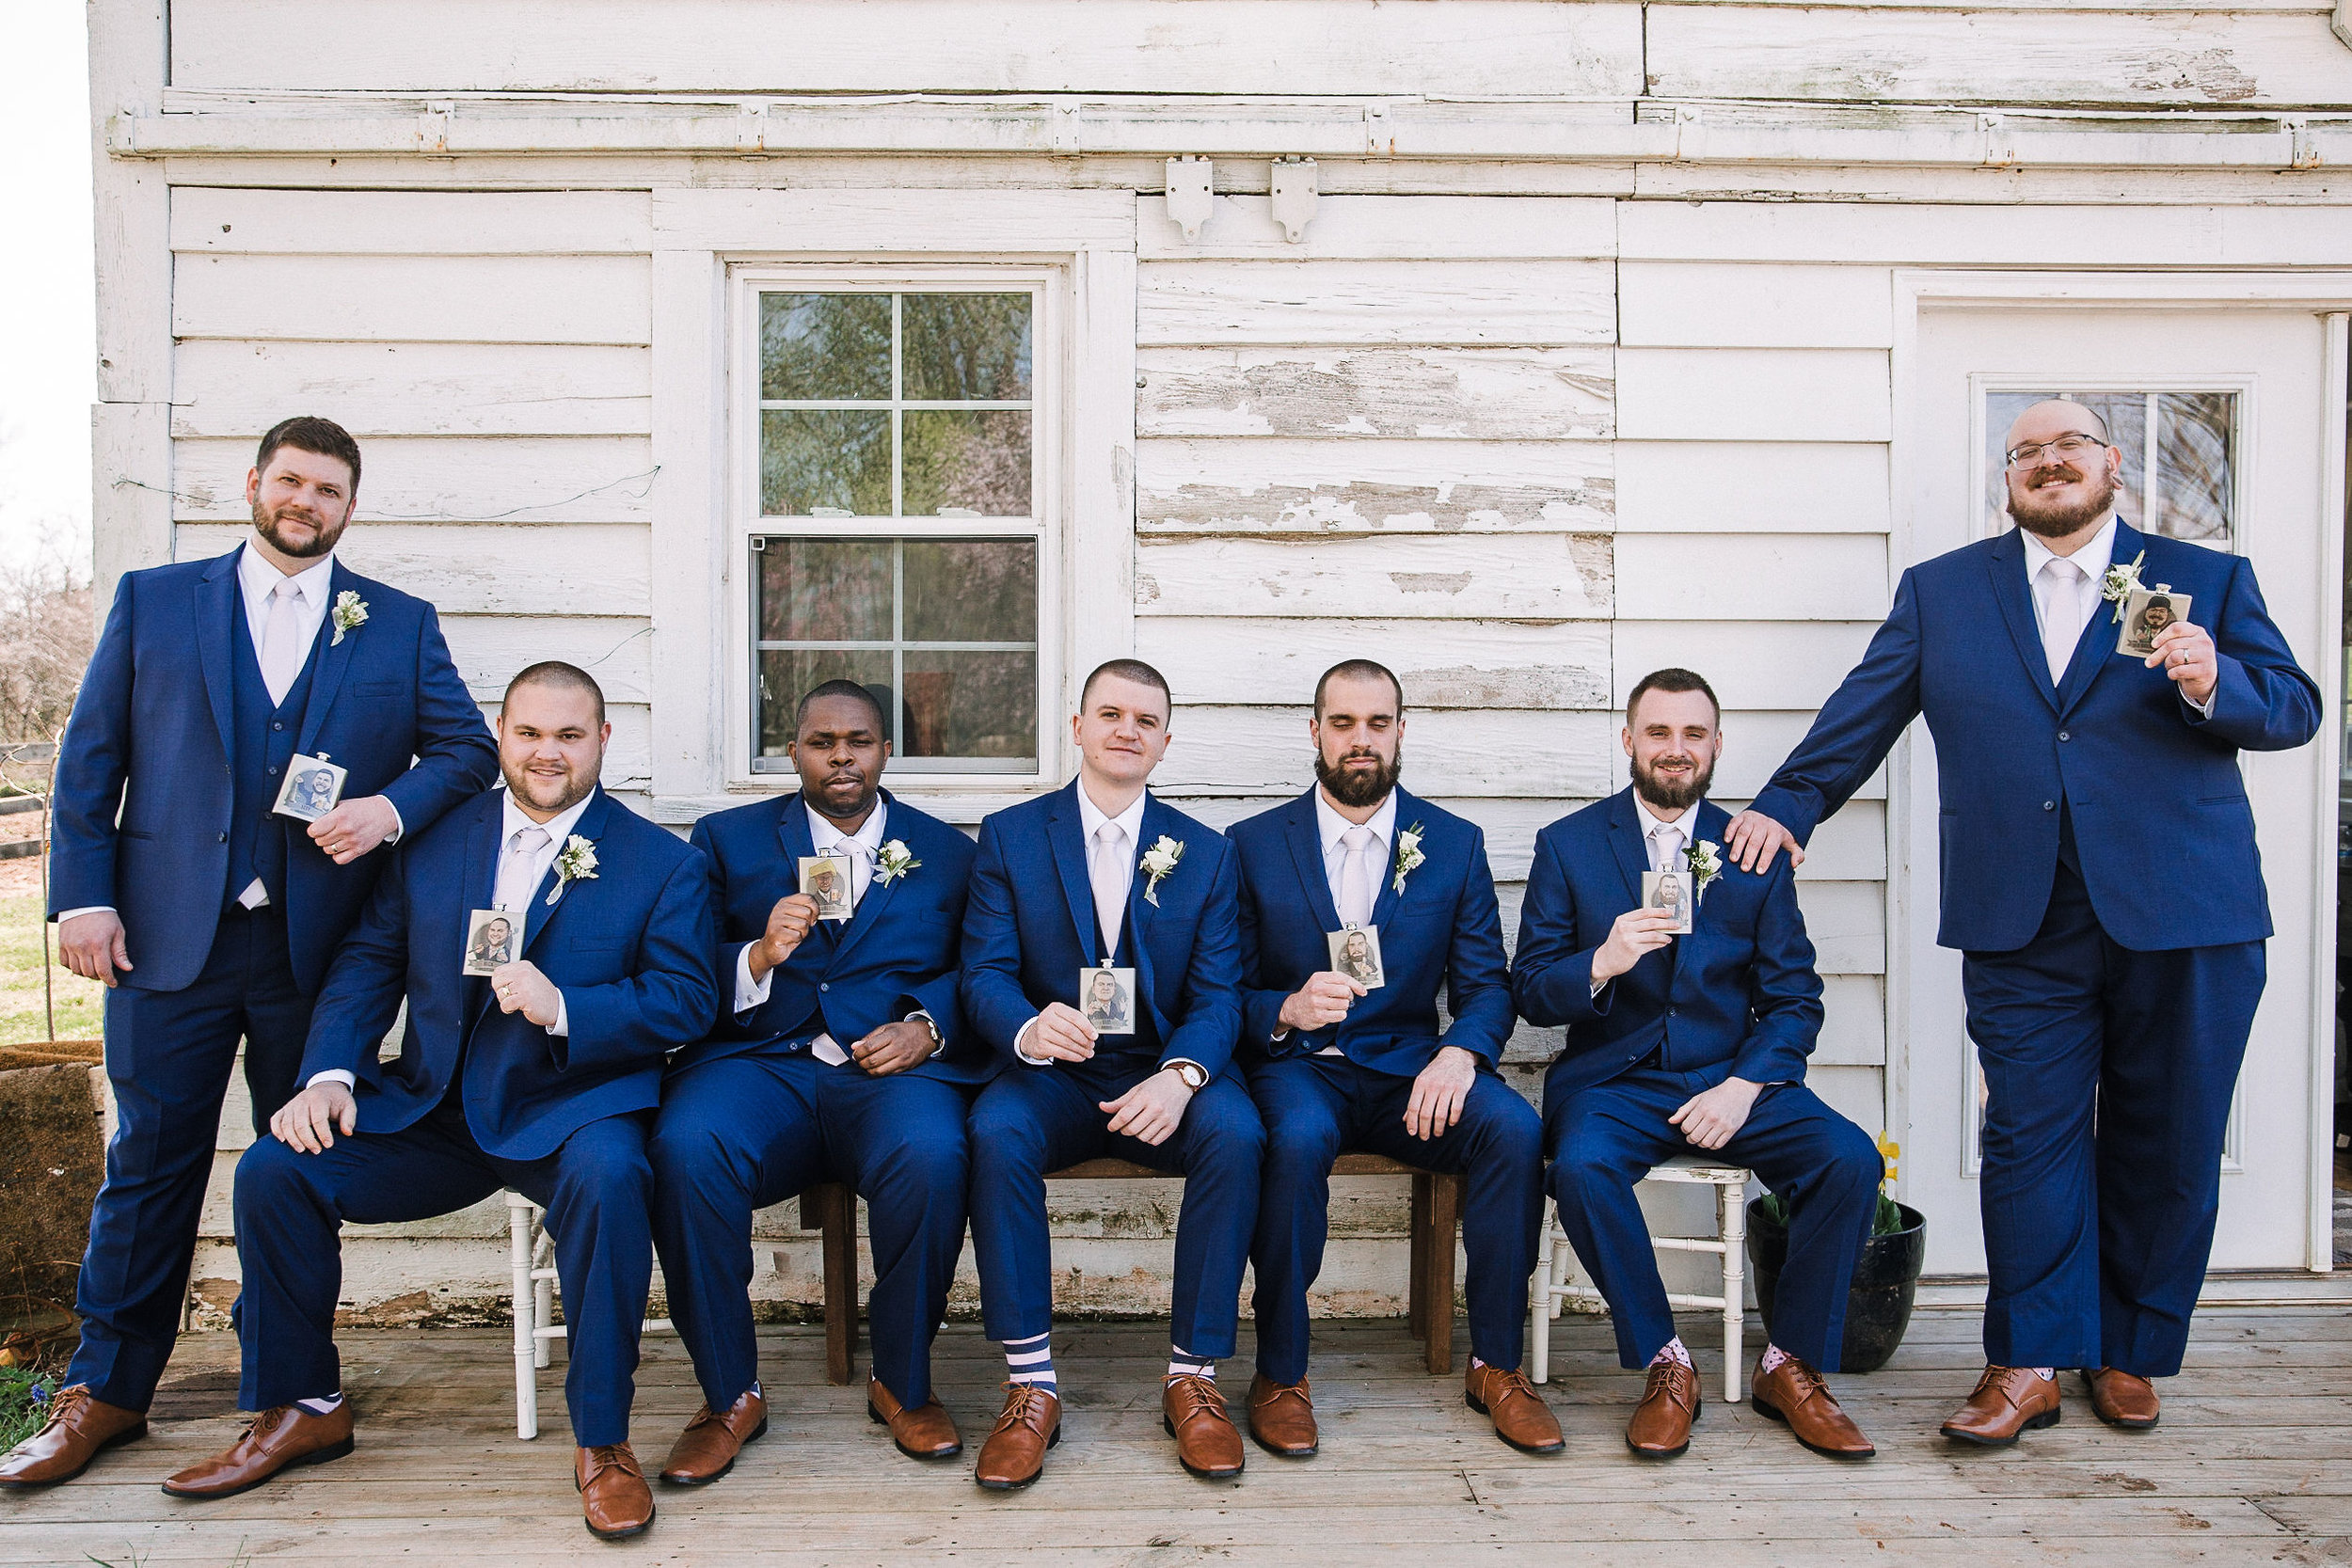 Groom and groomsmen posing with flasks at Rixey Manor